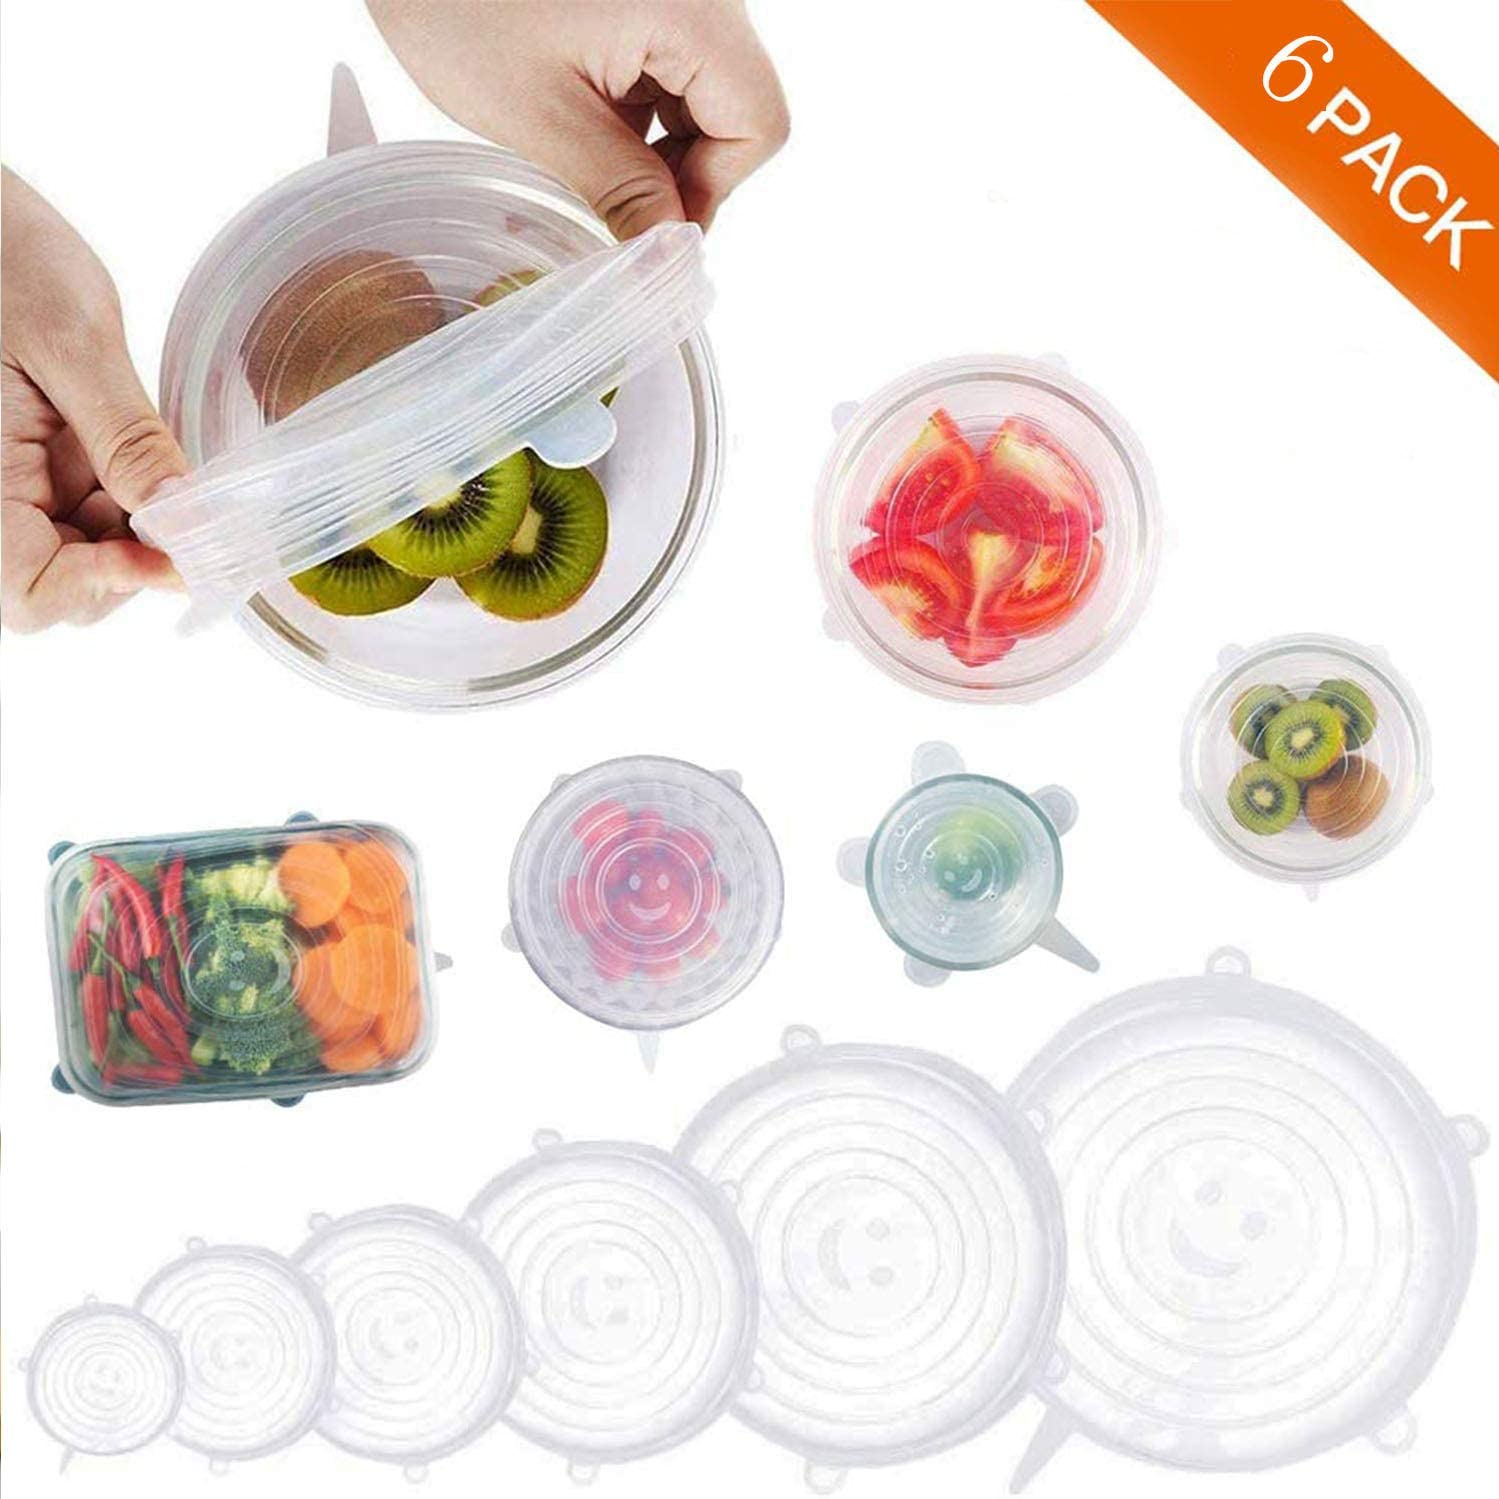 [6 PACK] Dilicone covers, Silicone Stretch Lids, sicone covers for Fresh Food Reusable Durable and Expandable, use for Bowl, Plate, Dishes, Jars, Cups, Oven, Microwave and Freezer